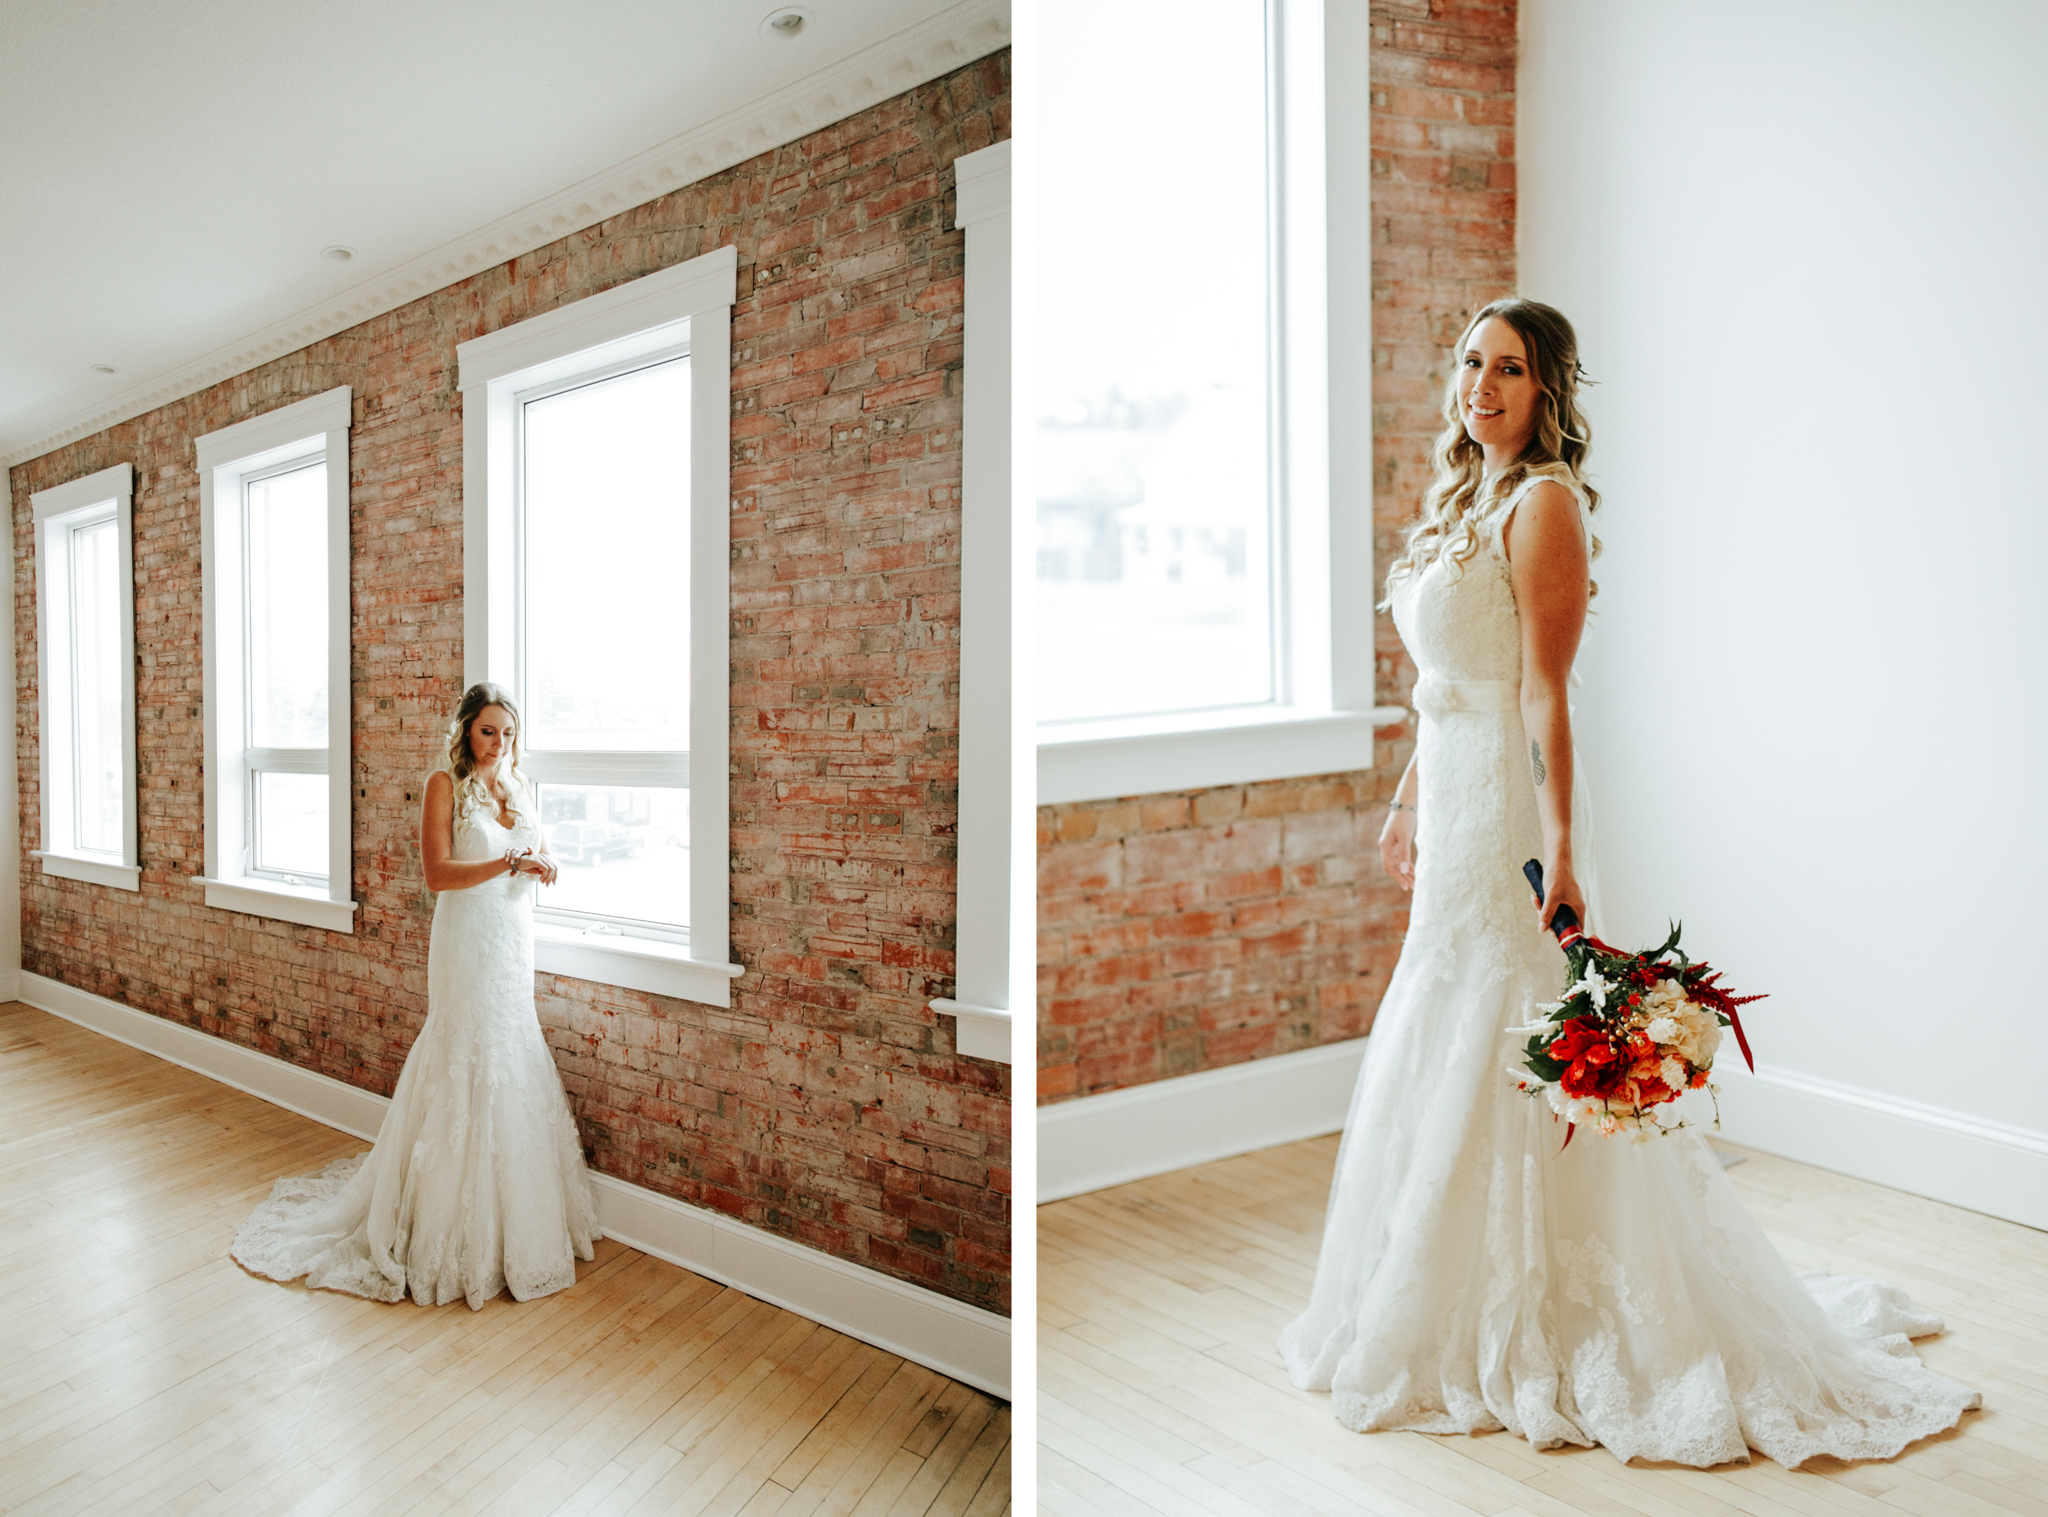 lethbridge-photographer-love-and-be-loved-photography-designed-to-dwell-wedding-katie-kelly-photo-image-picture-208.jpg